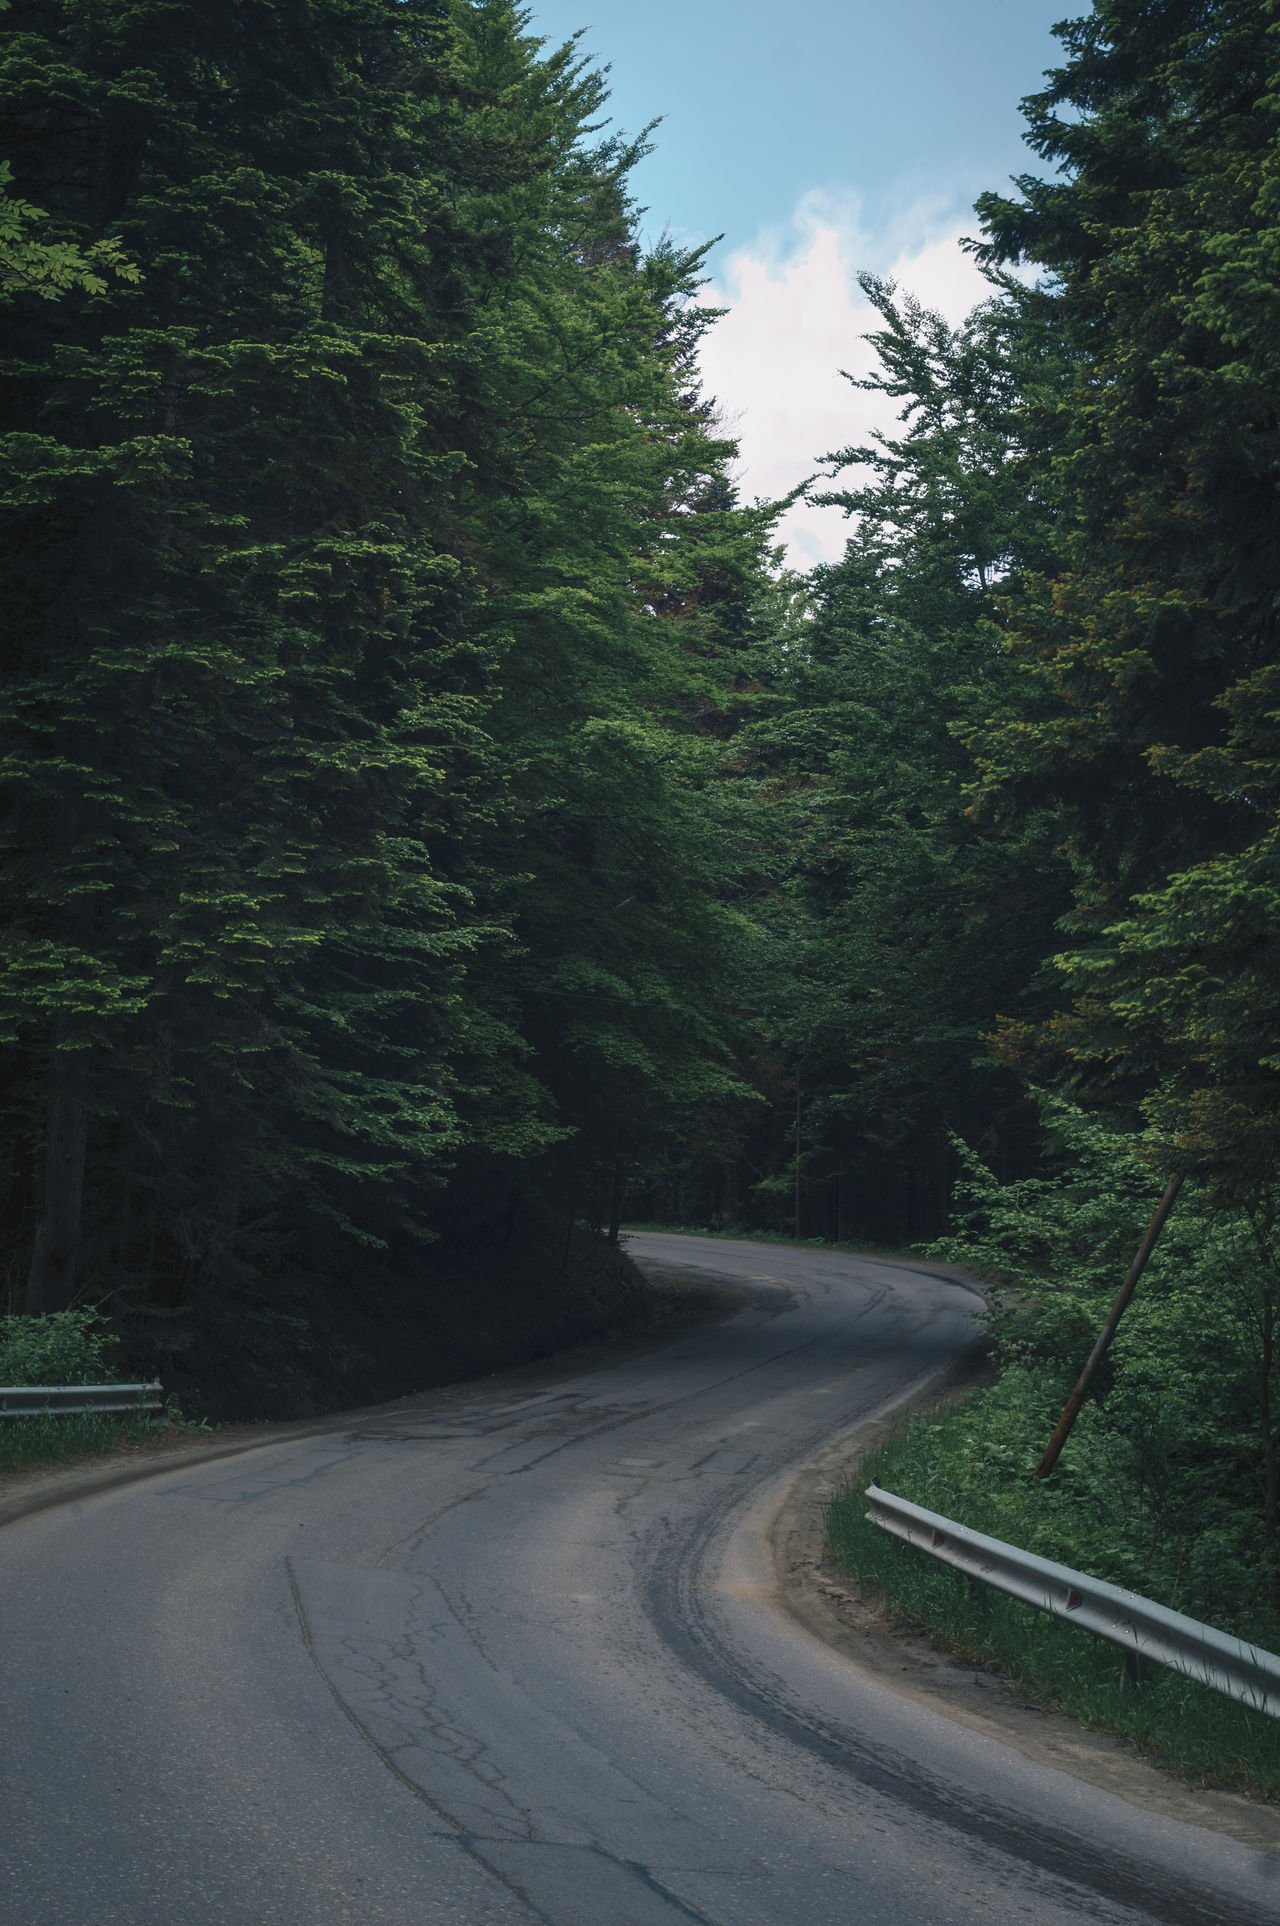 Beauty In Nature Curve Day Growth Landscape Nature No People Outdoors Road Scenics Sky The Way Forward Tranquil Scene Tranquility Transportation Tree Winding Road